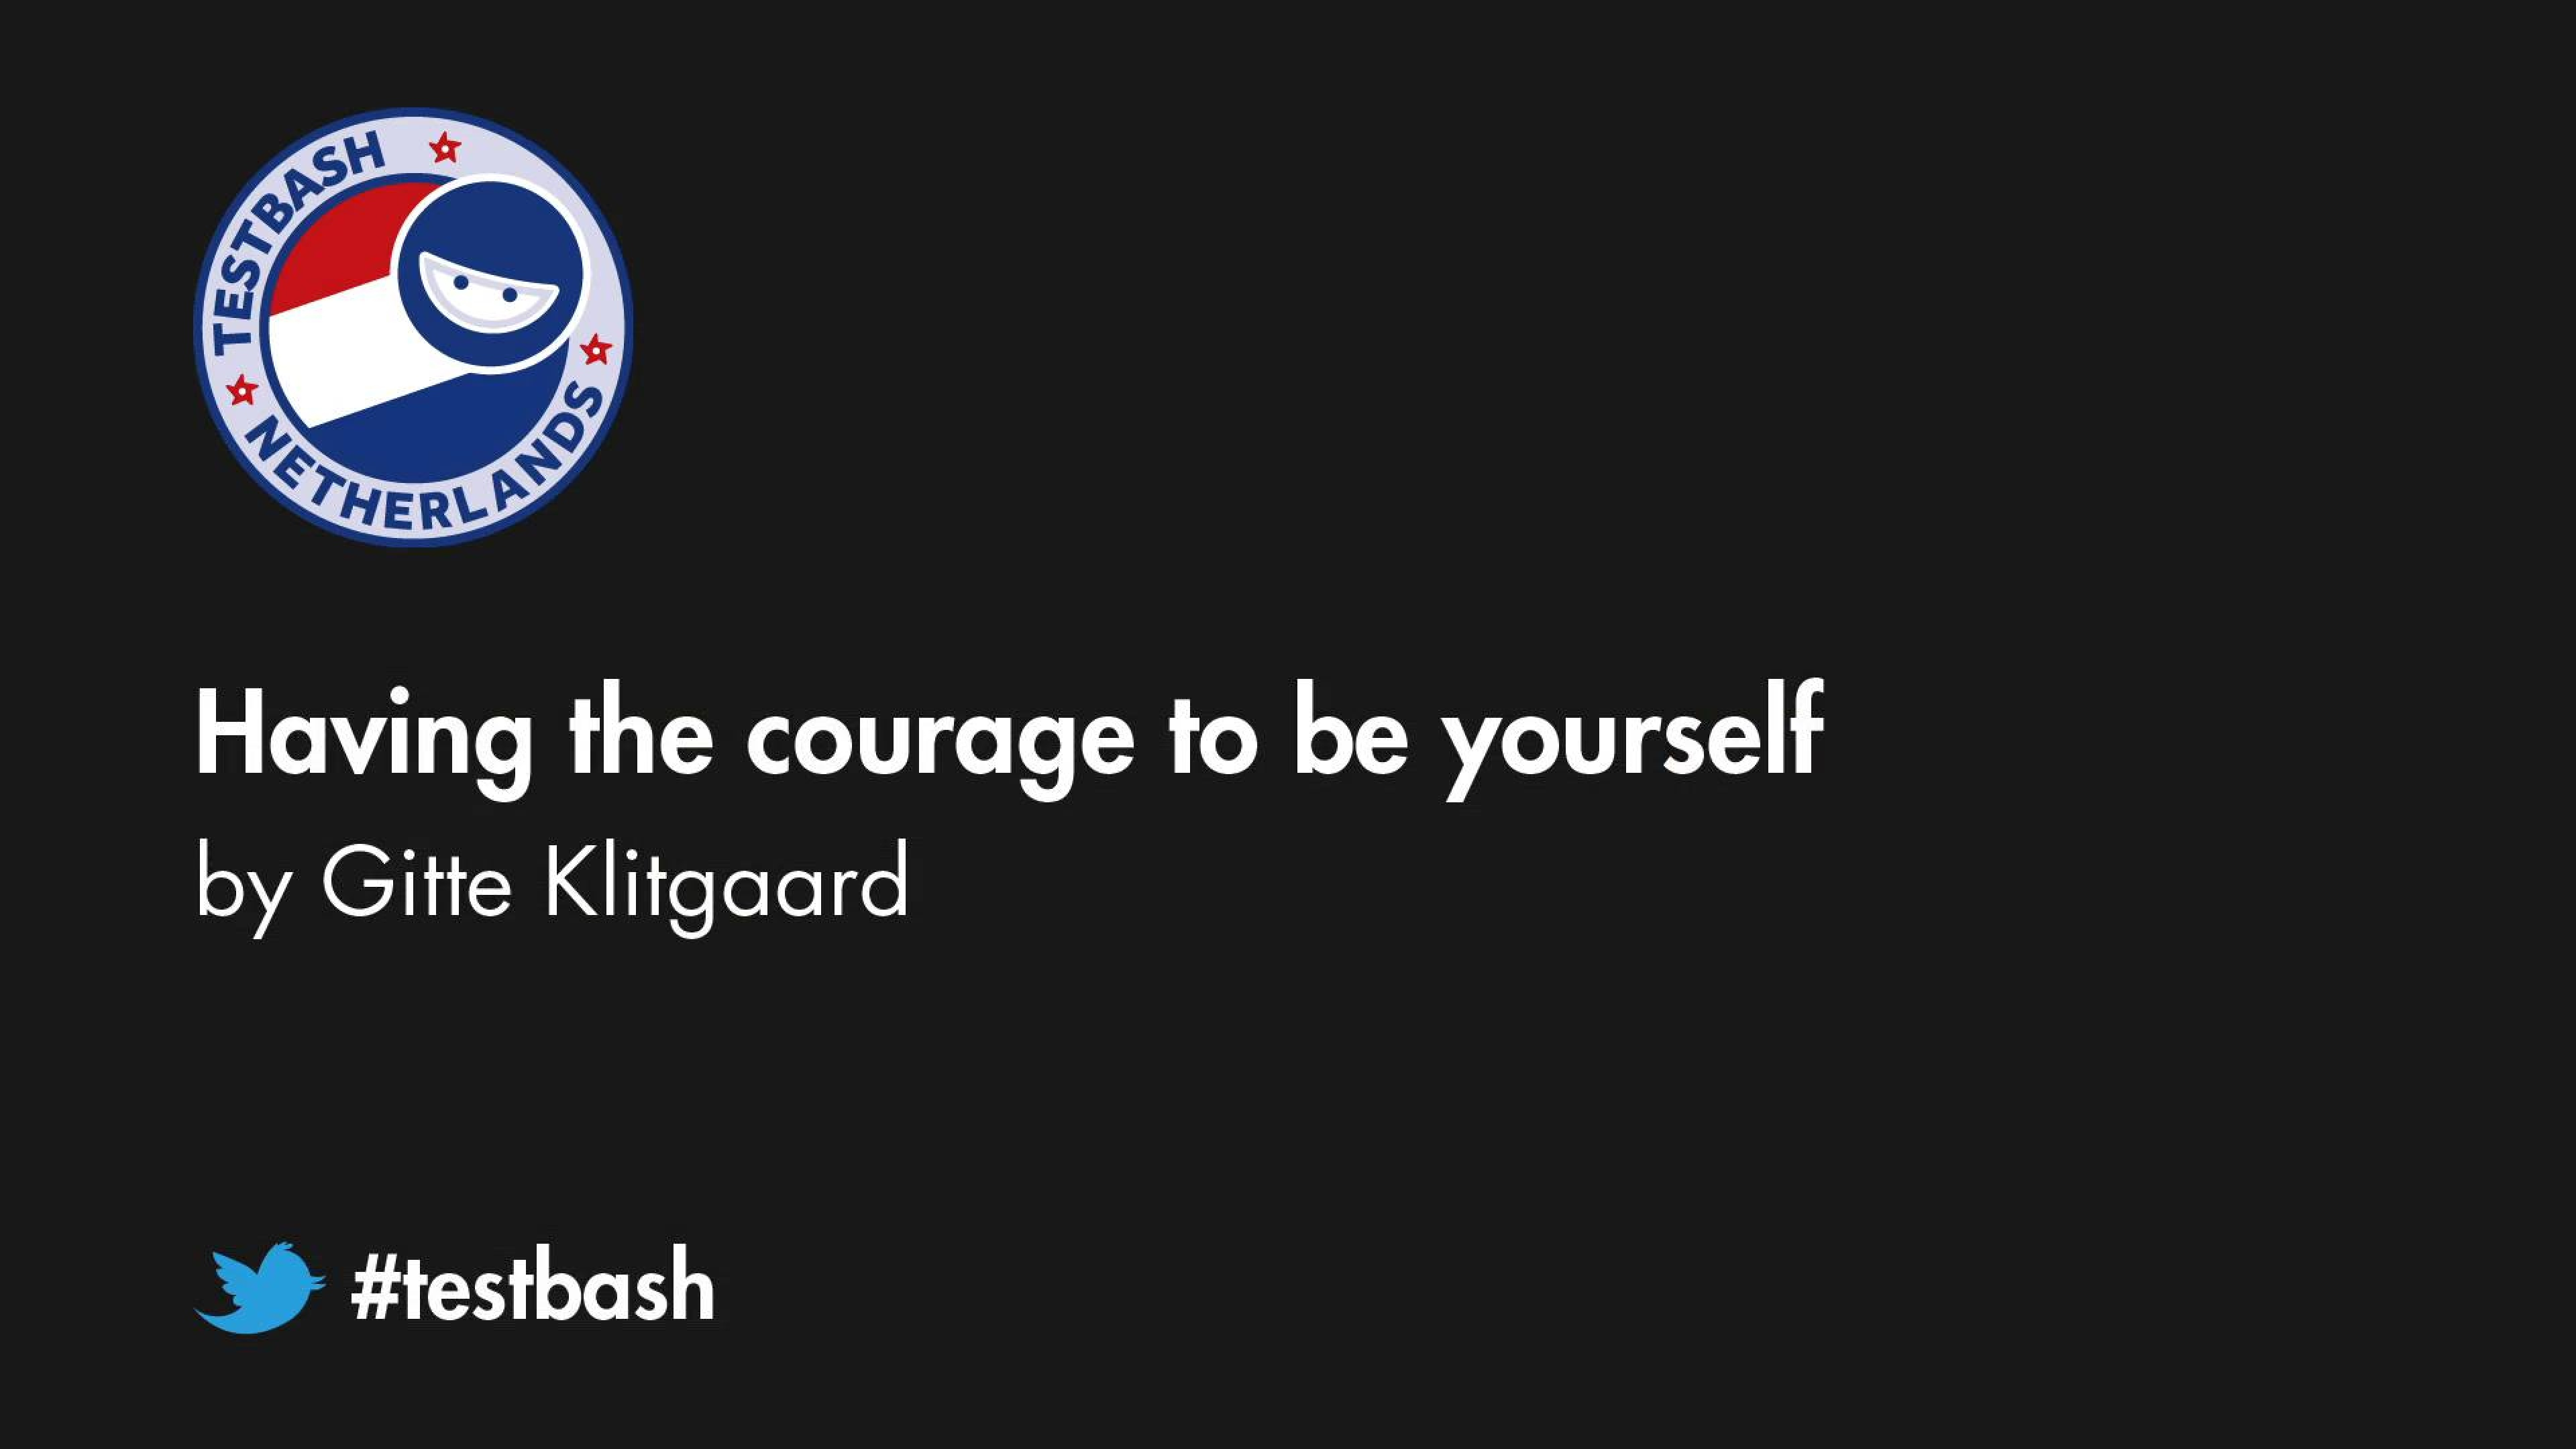 Having the courage to be yourself - Gitte Klitgaard